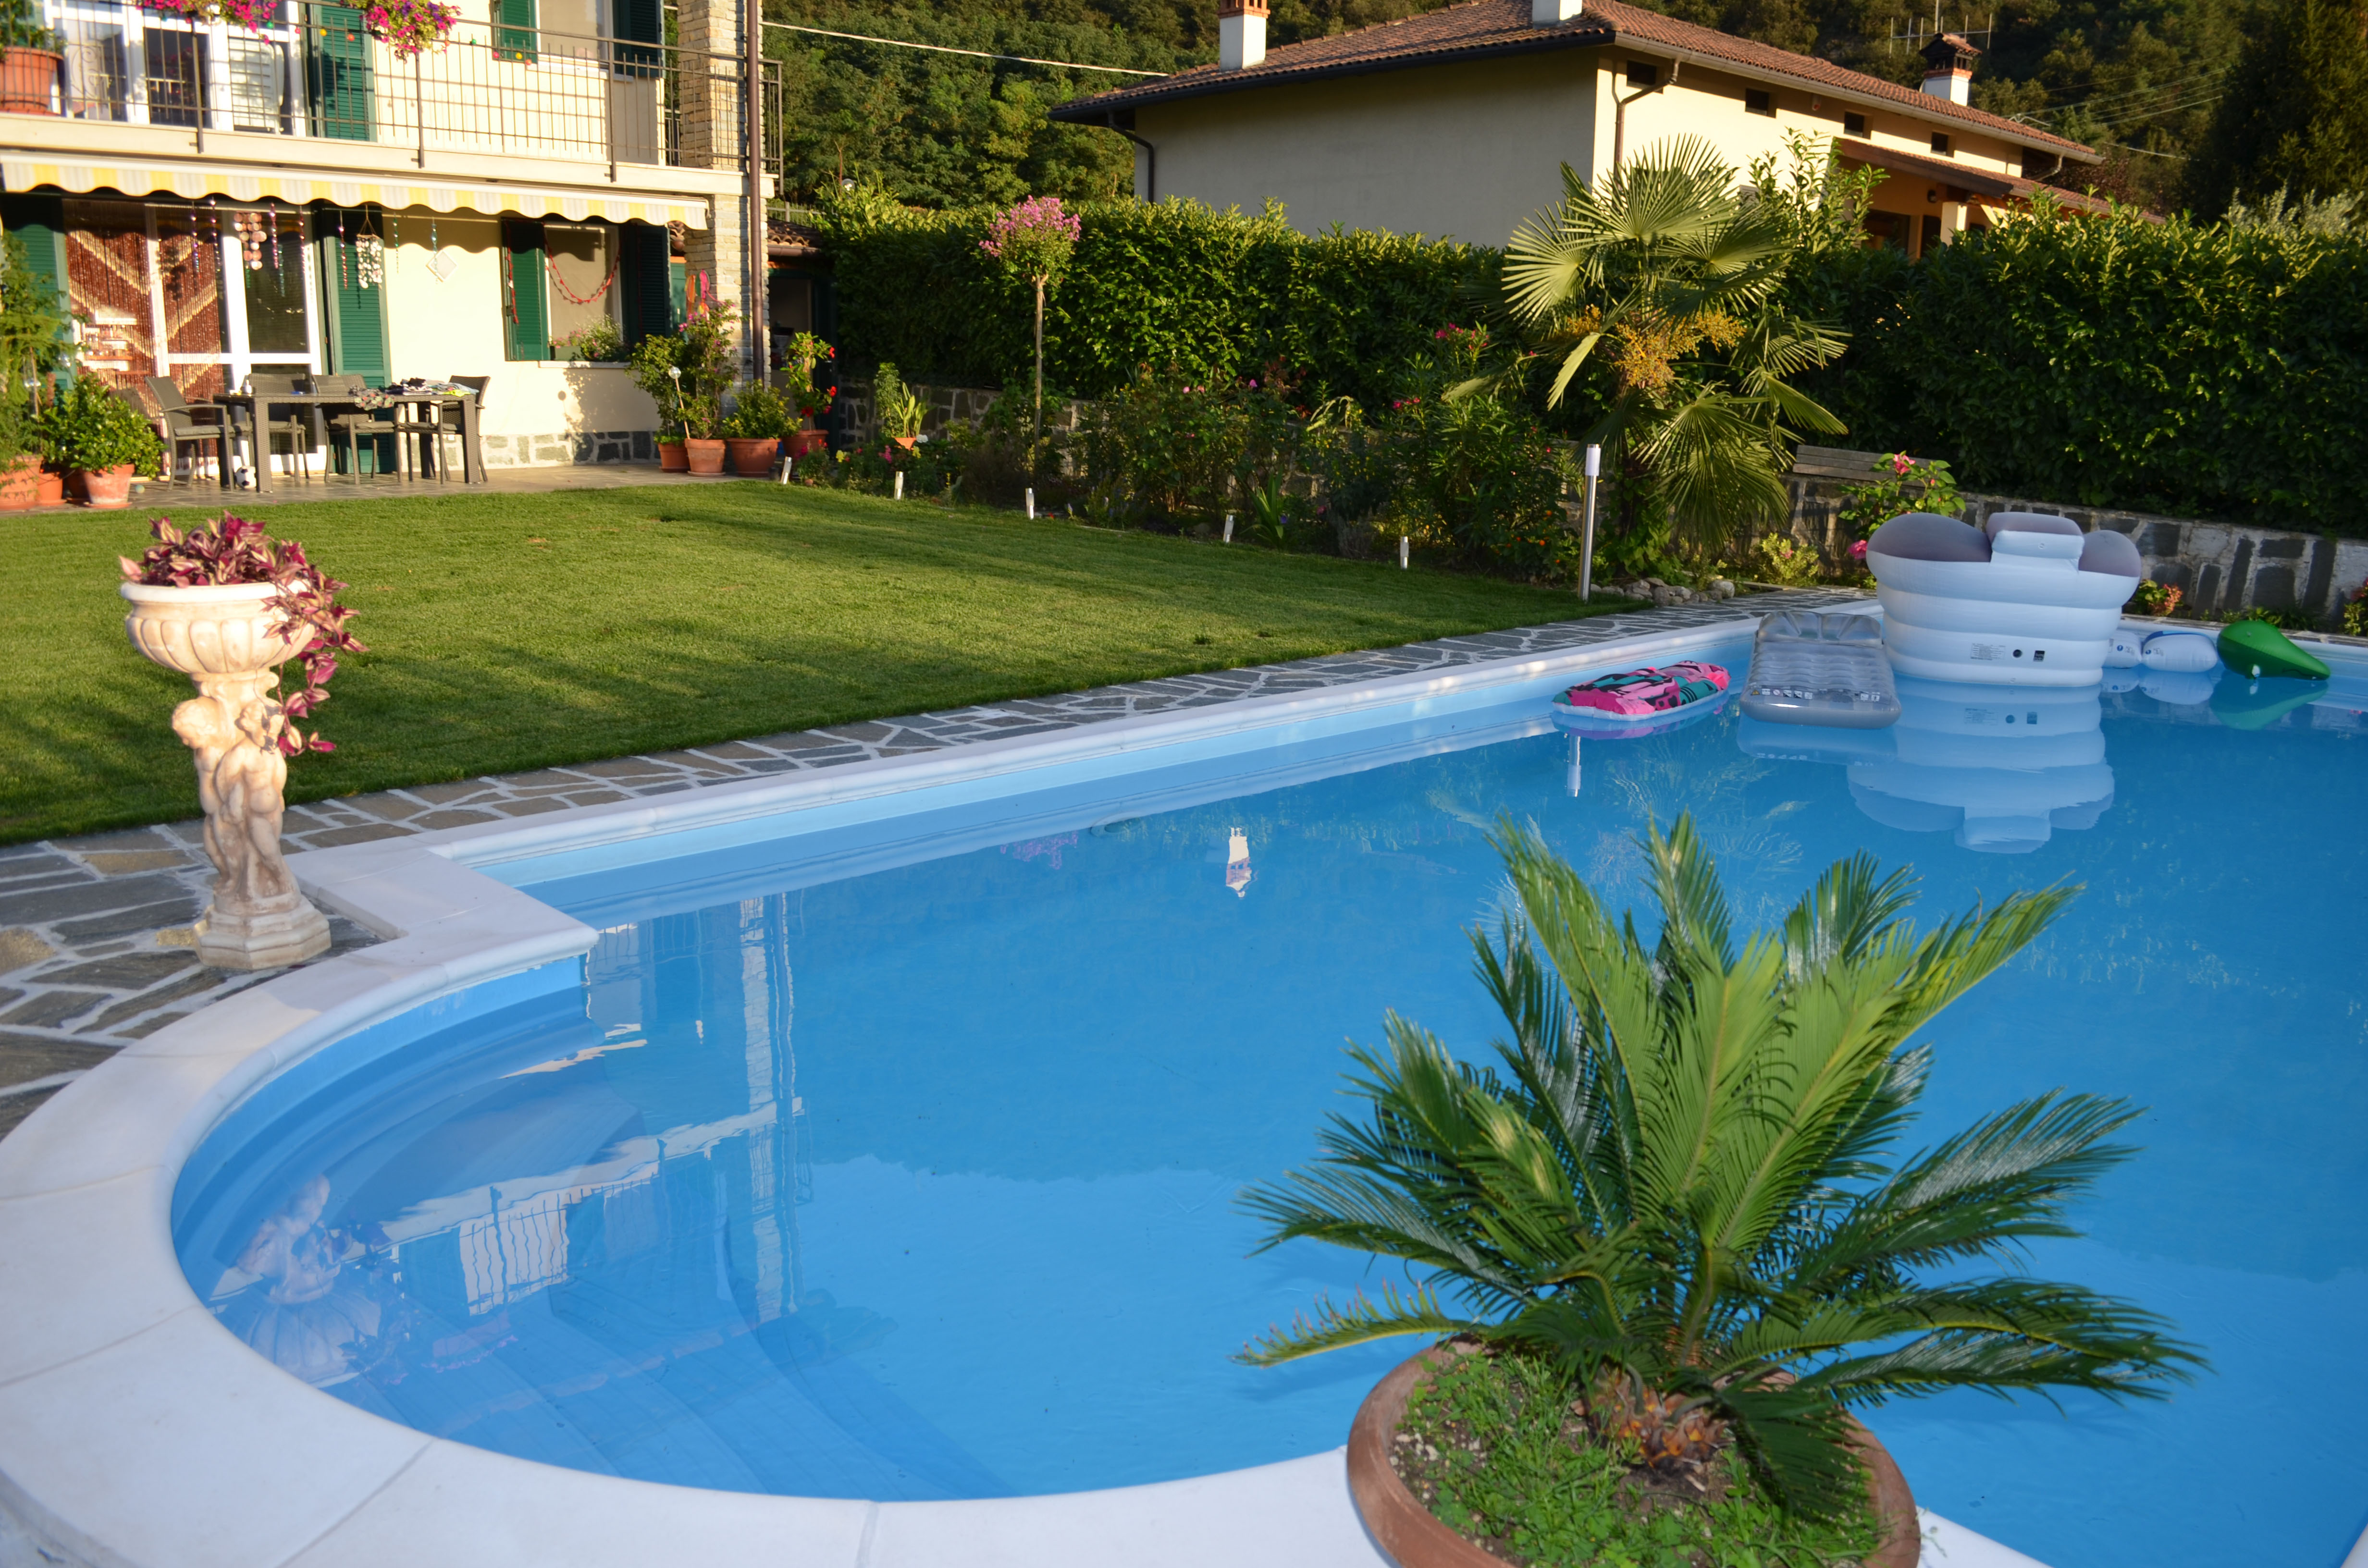 Pool Garten Winter Casa Romantica For Up To 10 People With Private Pool Views Over